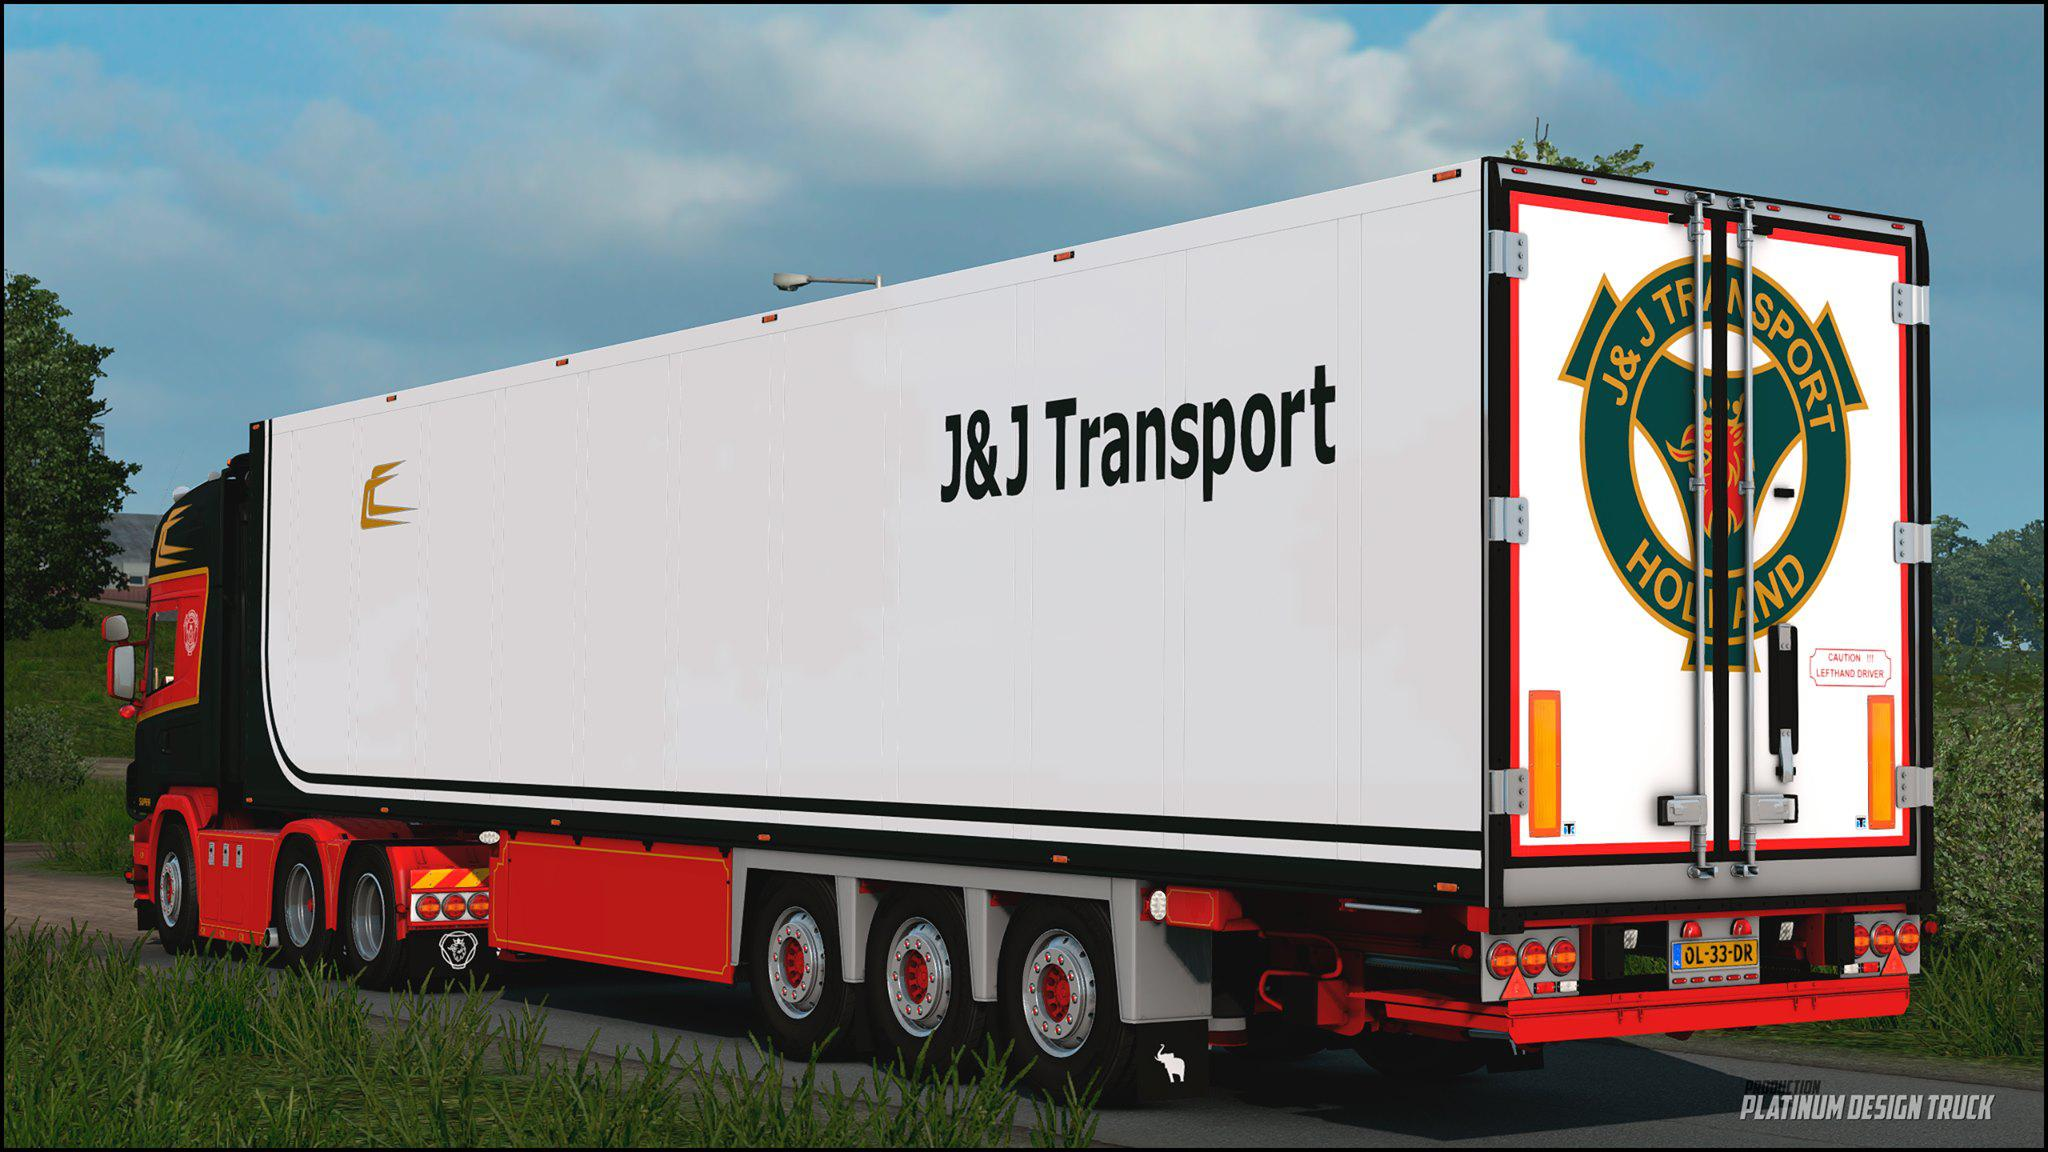 ETS2 - Scania 164 L 480 J&J Transport Official Update (1.39.x)